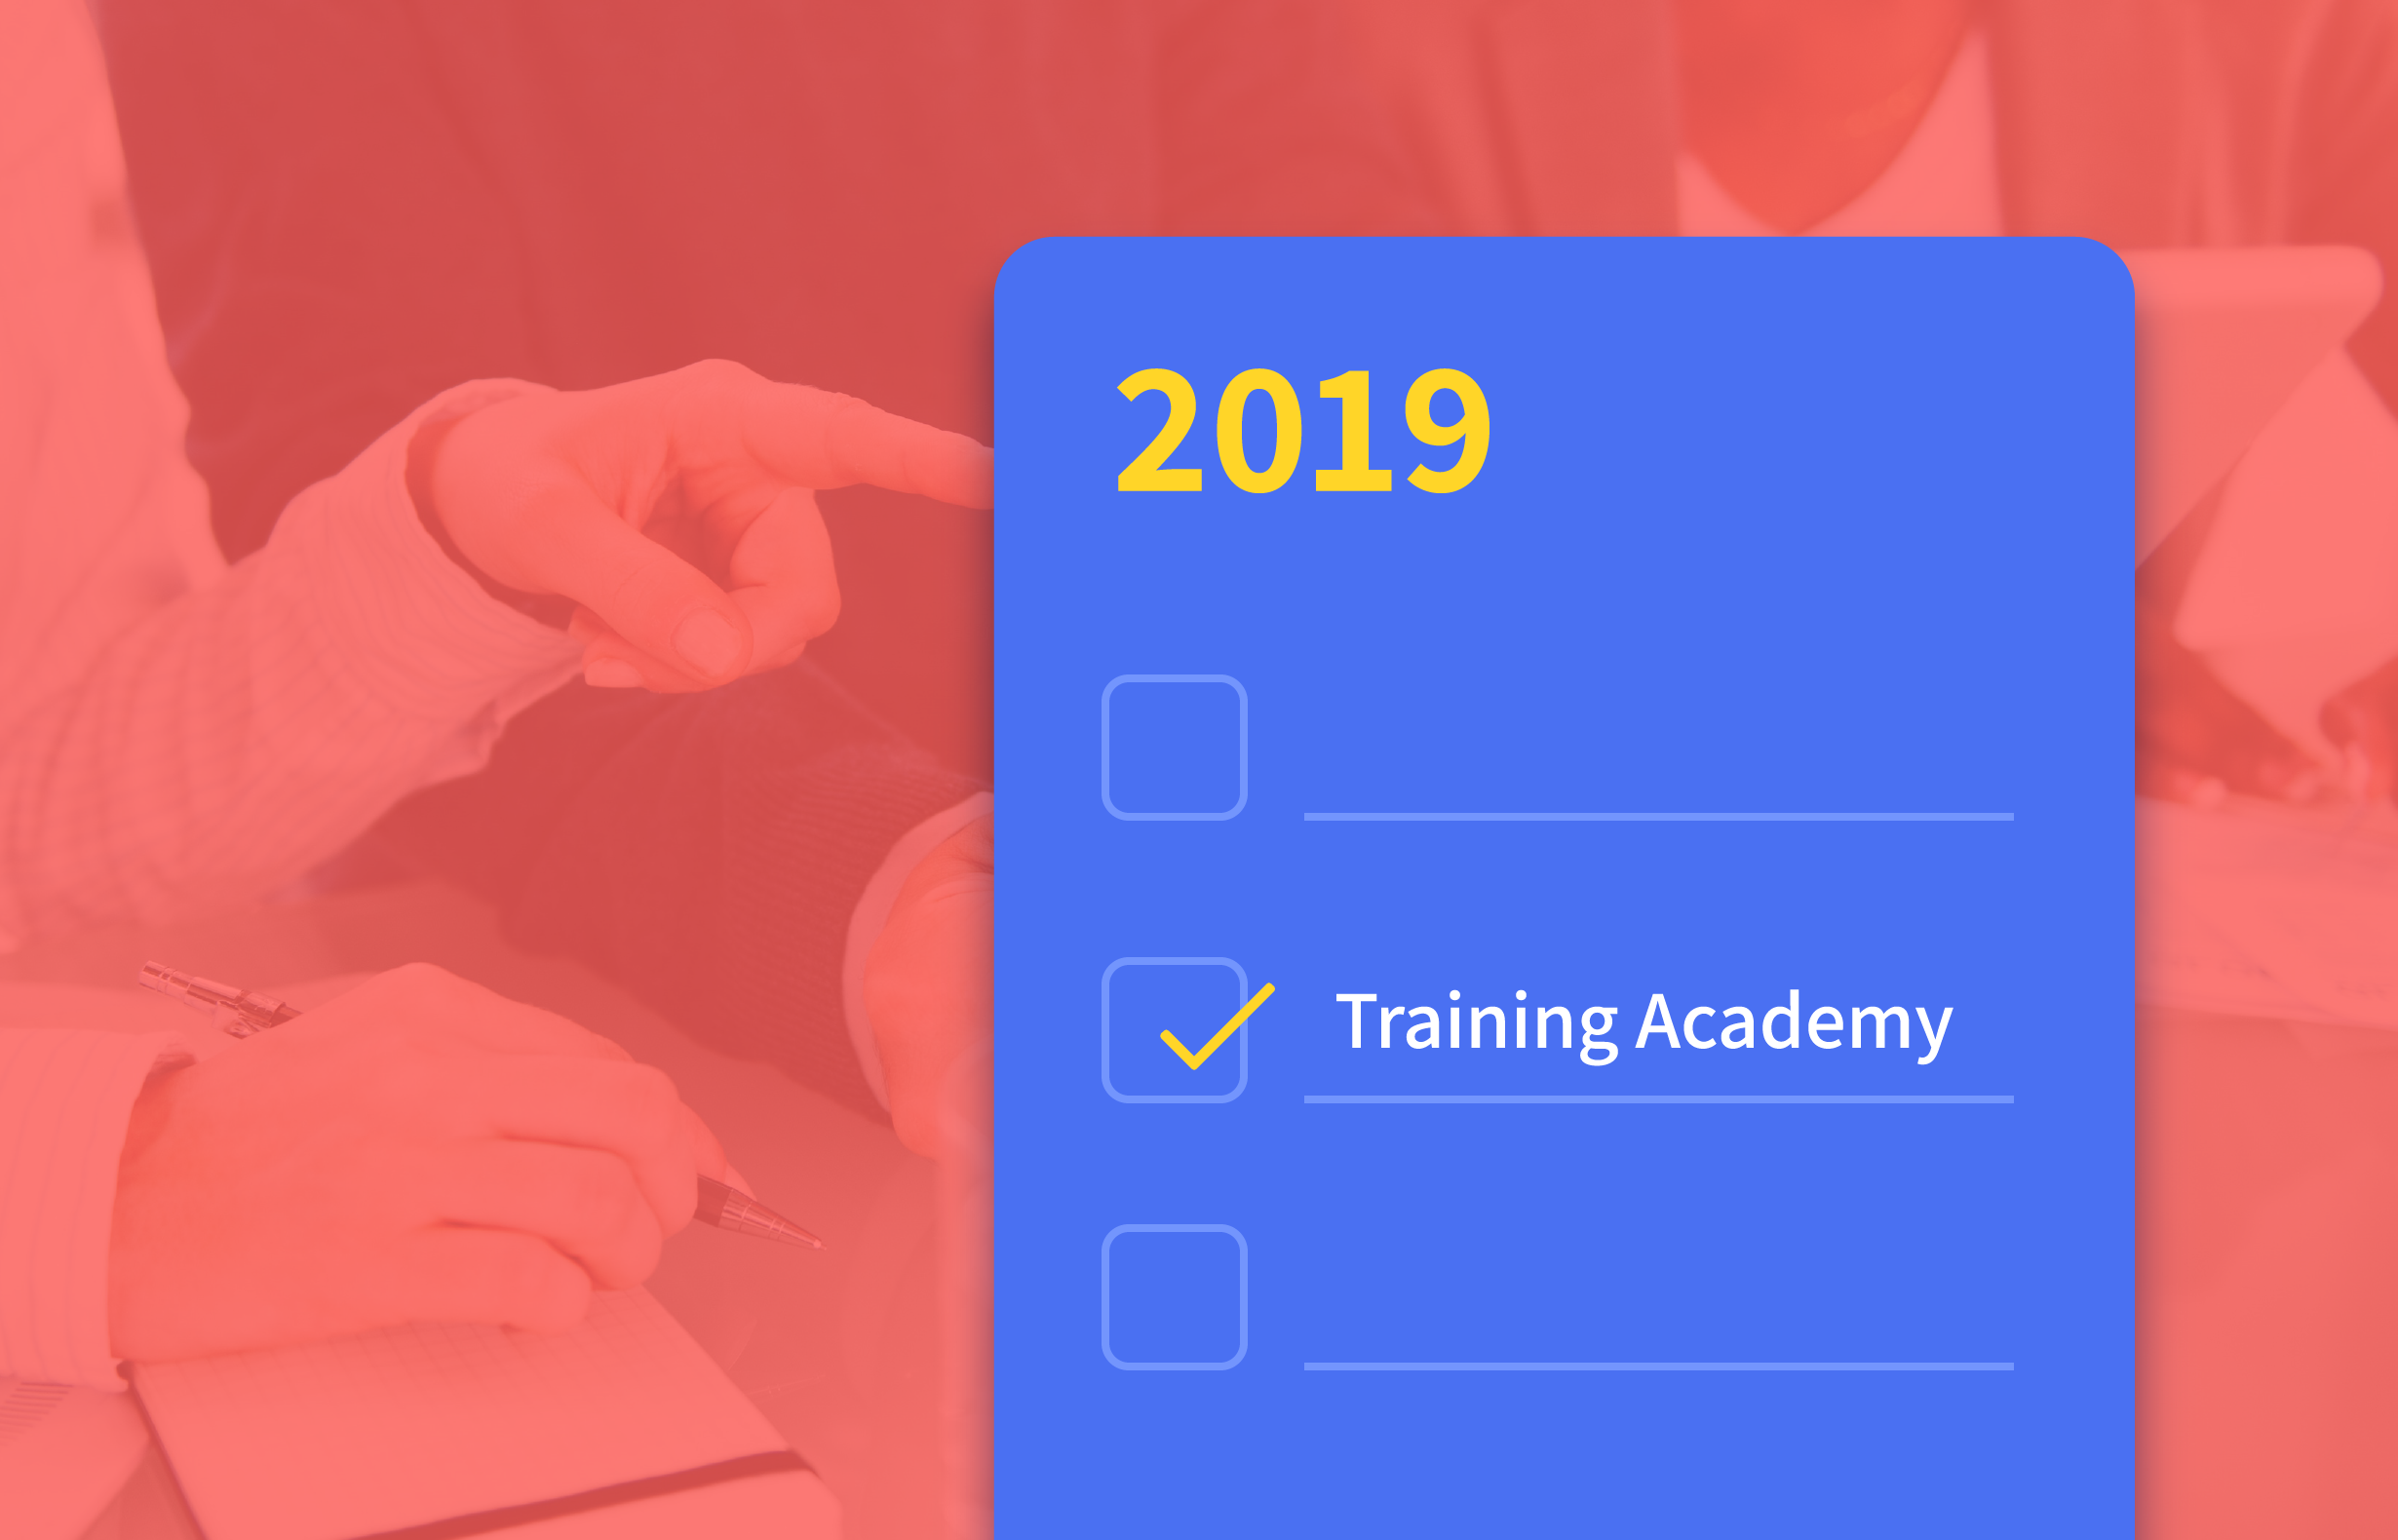 blogPost_16ReasonsIncorporateTrainingAcademy2019 plan@2x